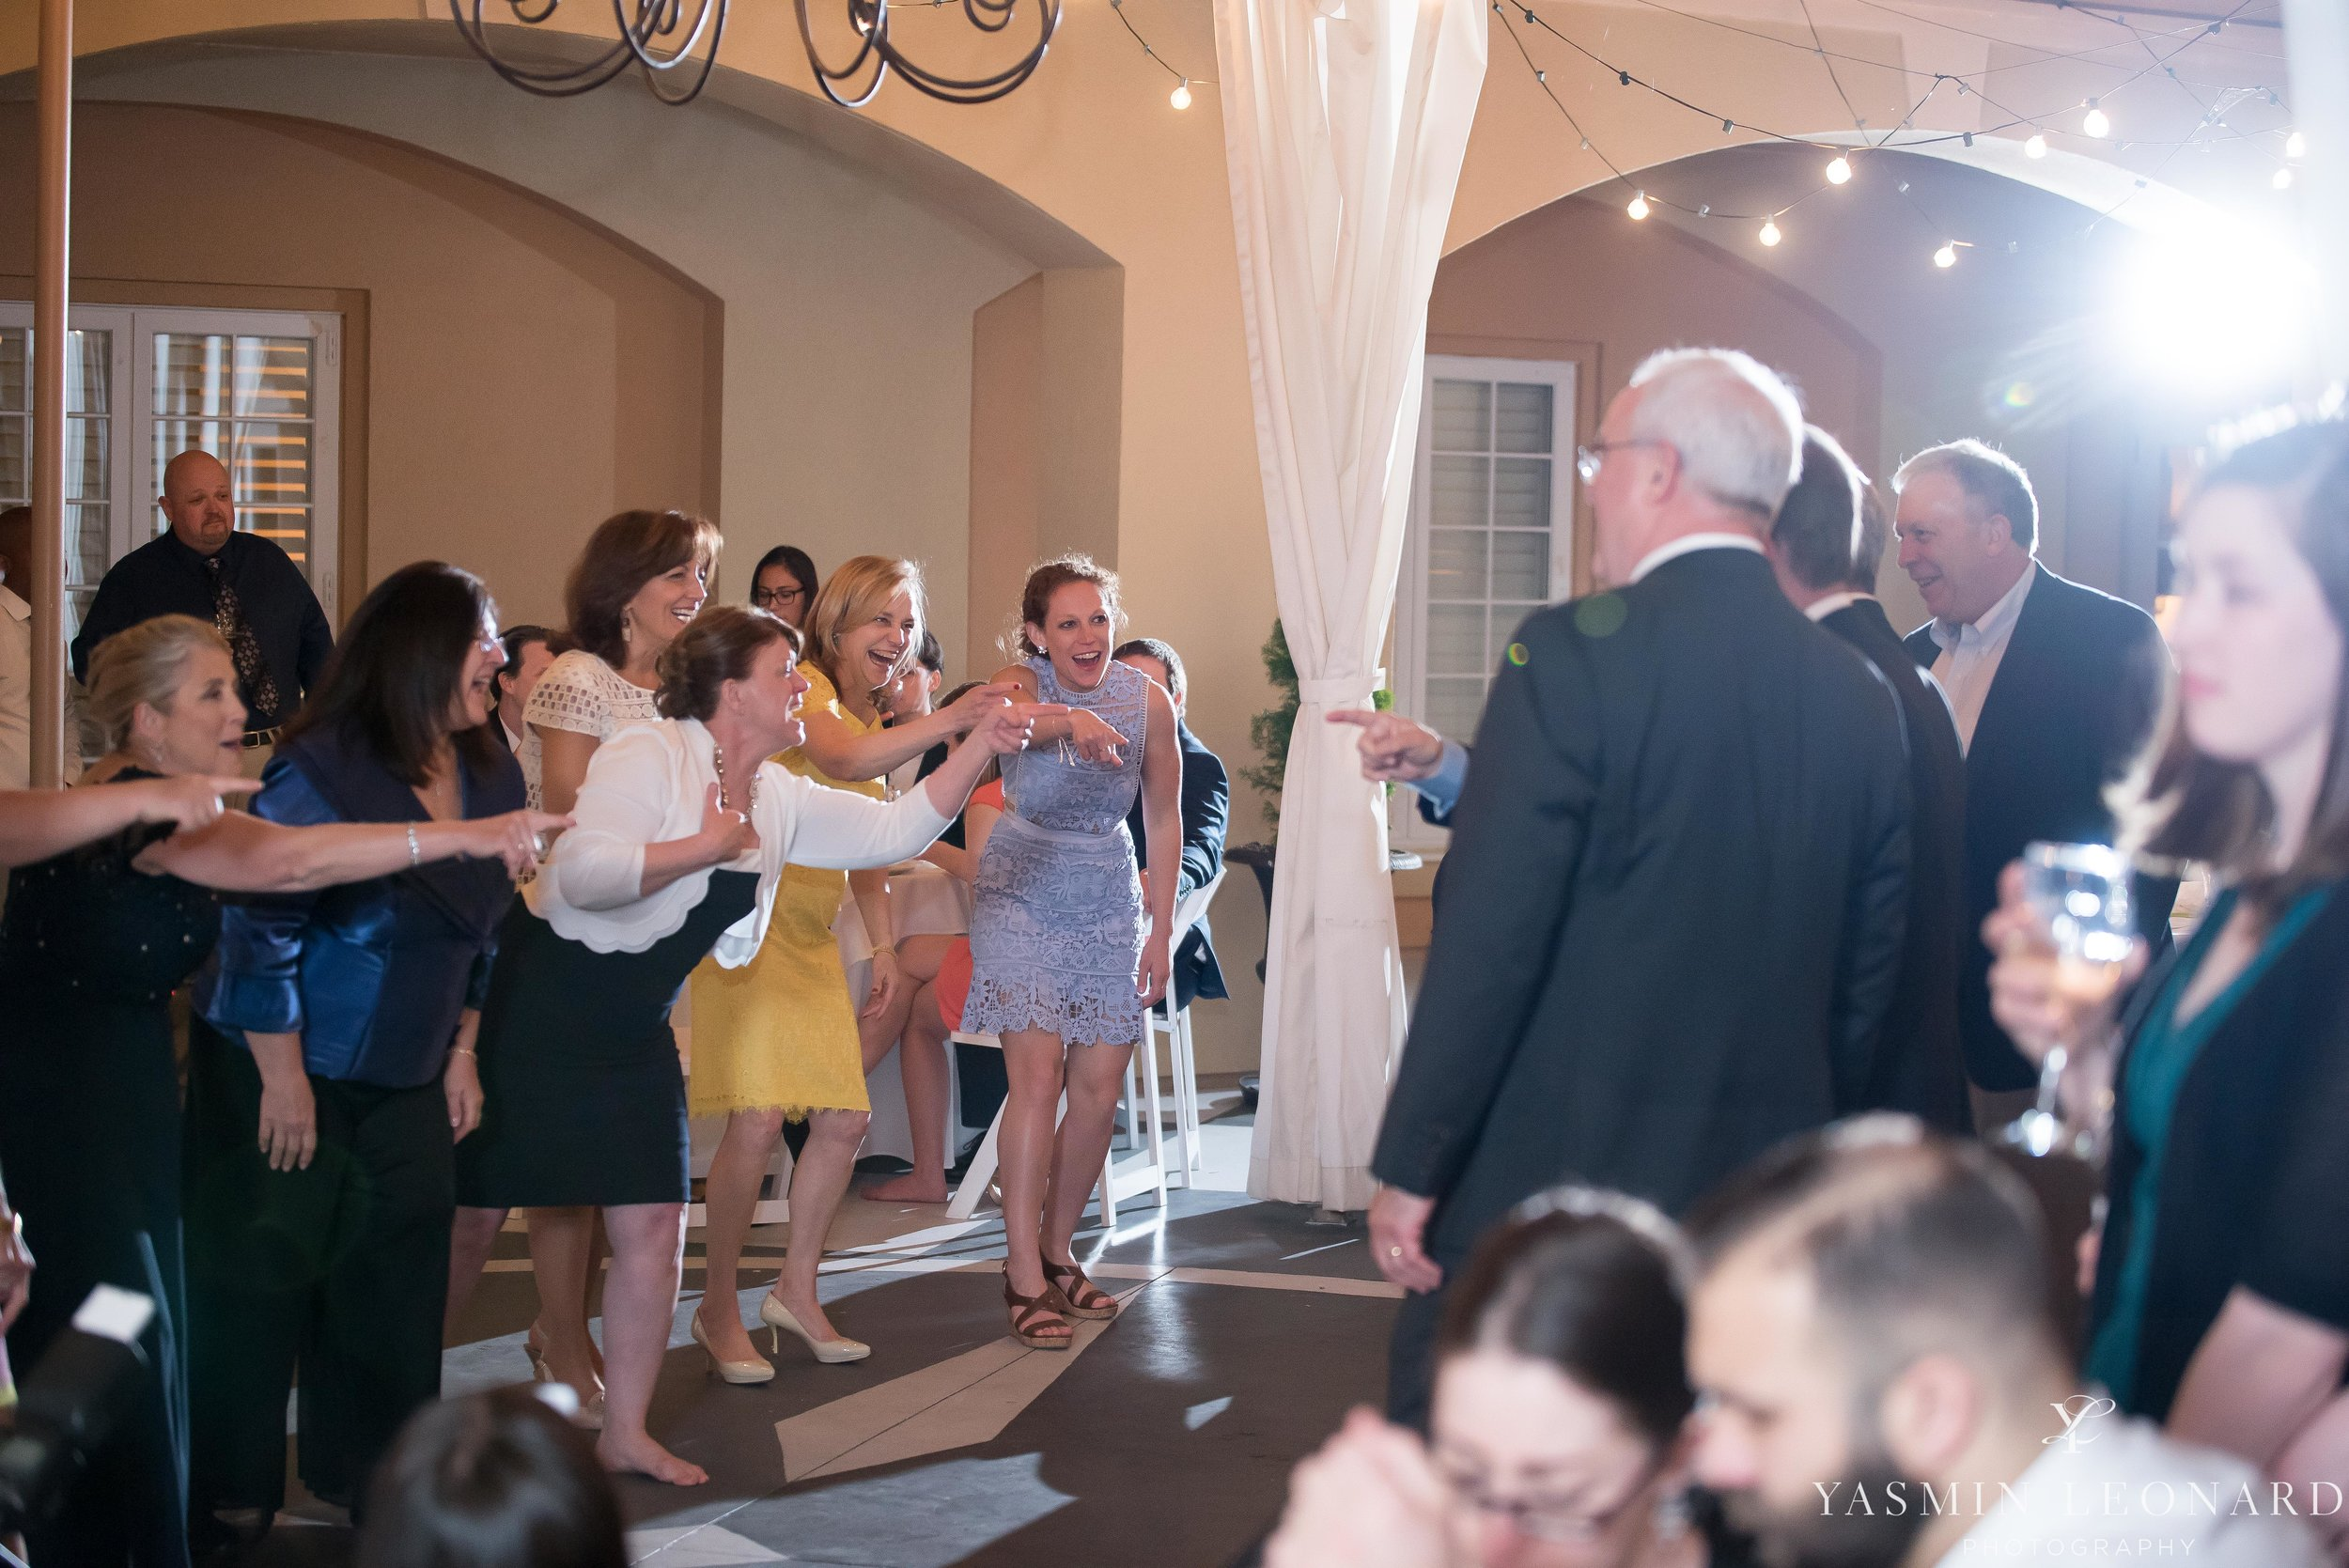 JH ADAMS INN - HIGH POINT UNIVERSITY CHAPEL WEDDING - HPU CHAPEL - HIGH POINT WEDDINGS - NC WEDDING PHOTOGRAPHER - YASMIN LEONARD PHOTOGRAPHY - HIGH POINT NC - HIGH POINT WEDDINGS -73.jpg